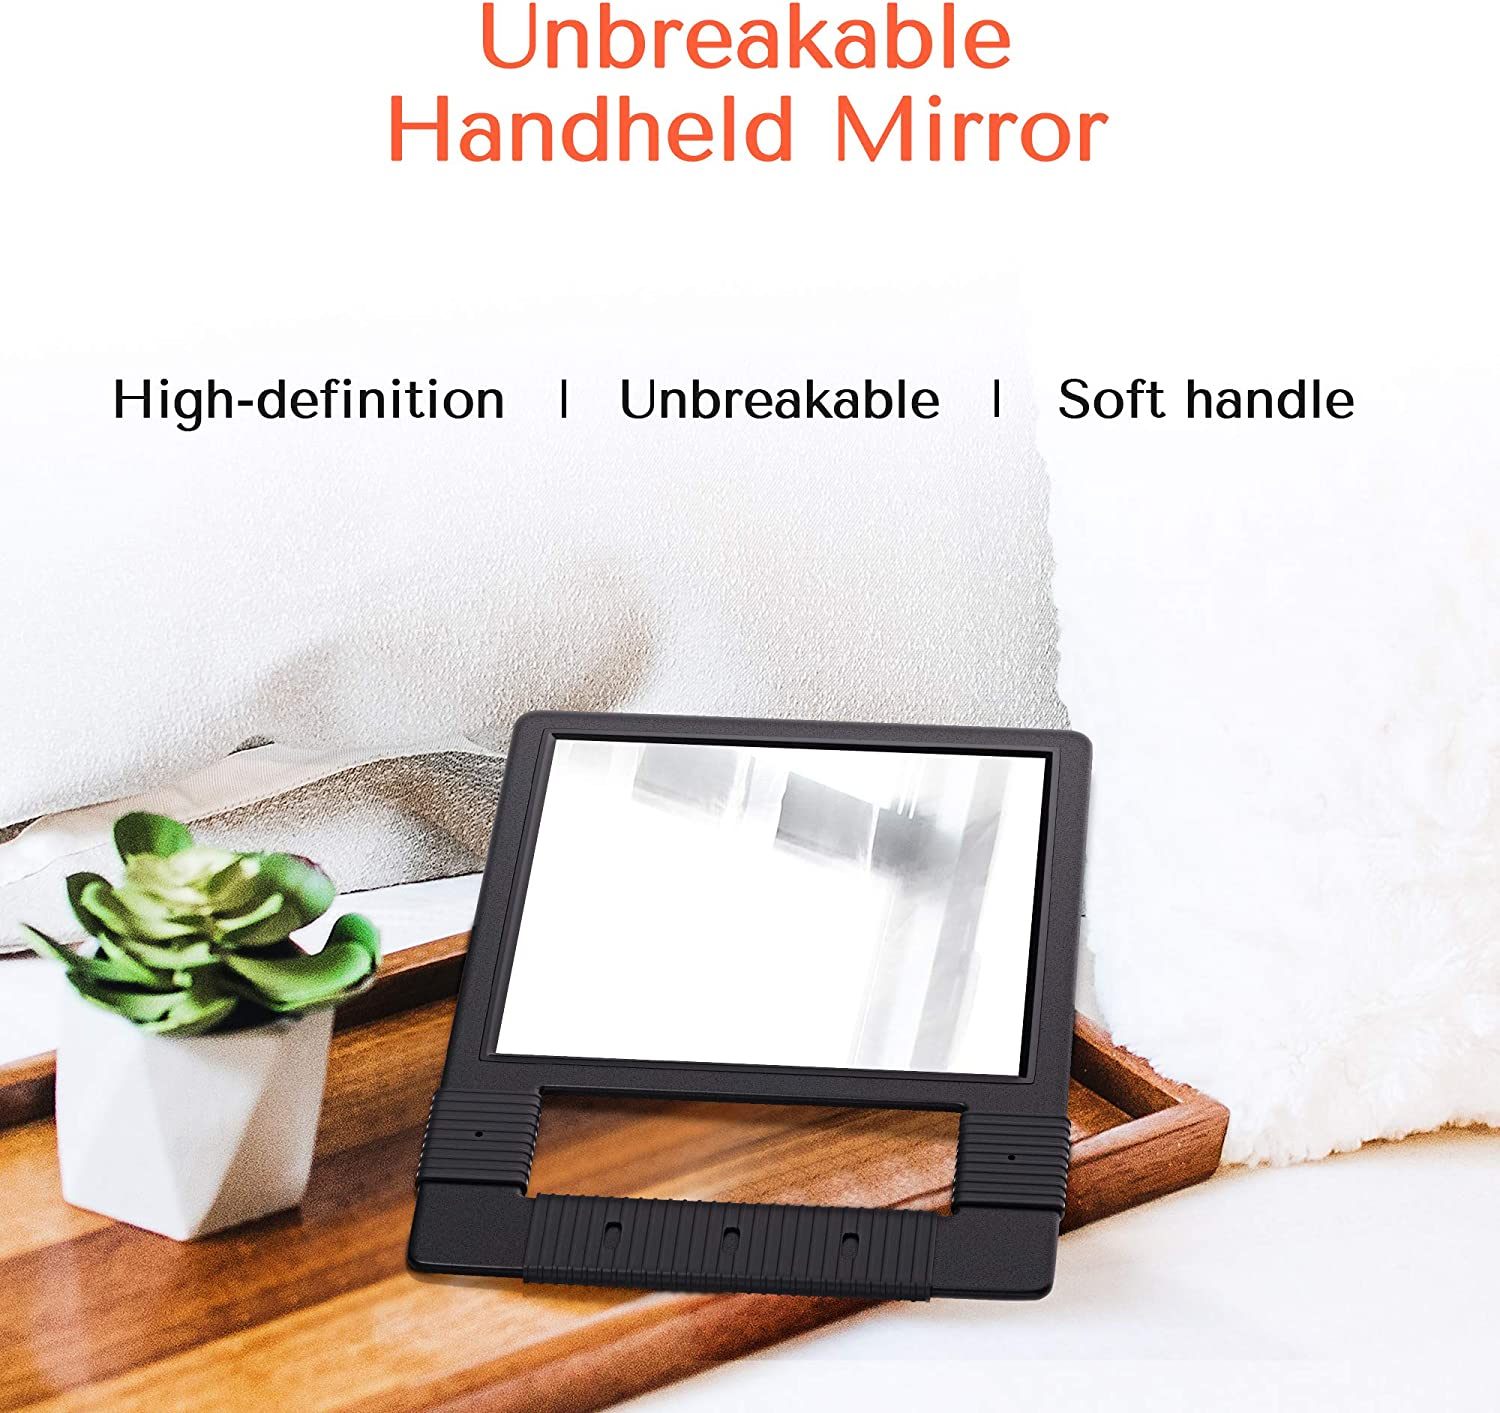 TASALON Hand Mirrors with Handle - Unbreakable Hand Mirror - Unbreakable Handheld Mirror with Silicone Handle for Barber Mirror, Salon Mirror, Makeup Mirror or Shower Mirror, Hand Held Mirror - Black: Kitchen & Dining